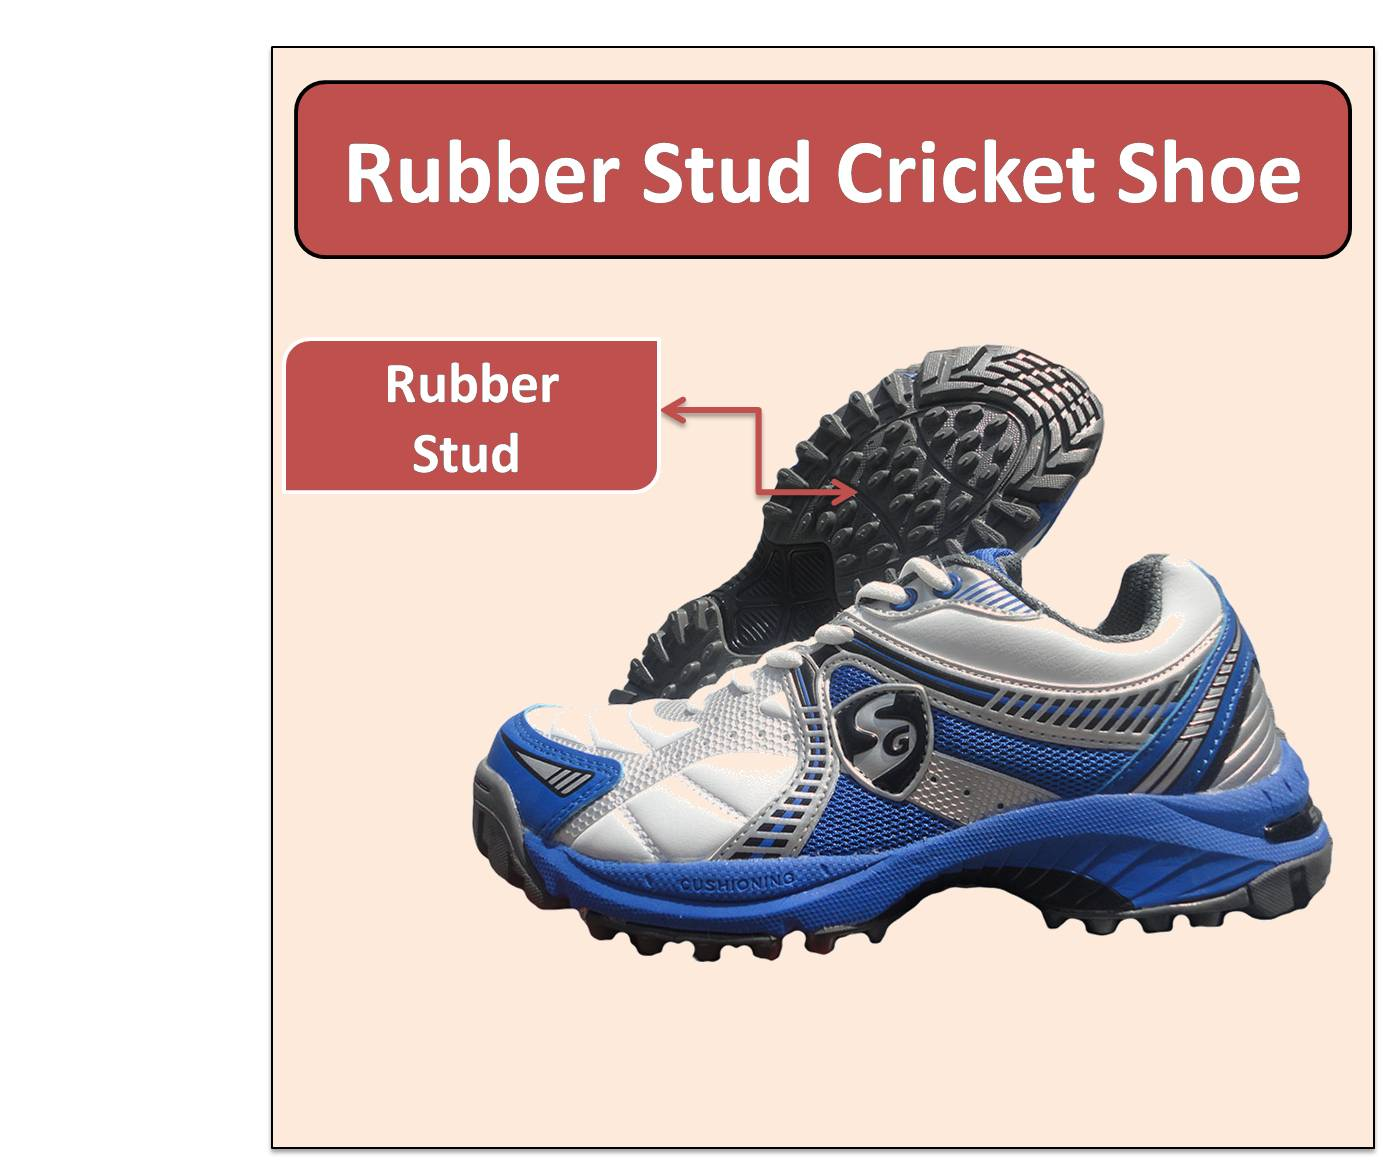 Rubber Stud Cricket Shoe